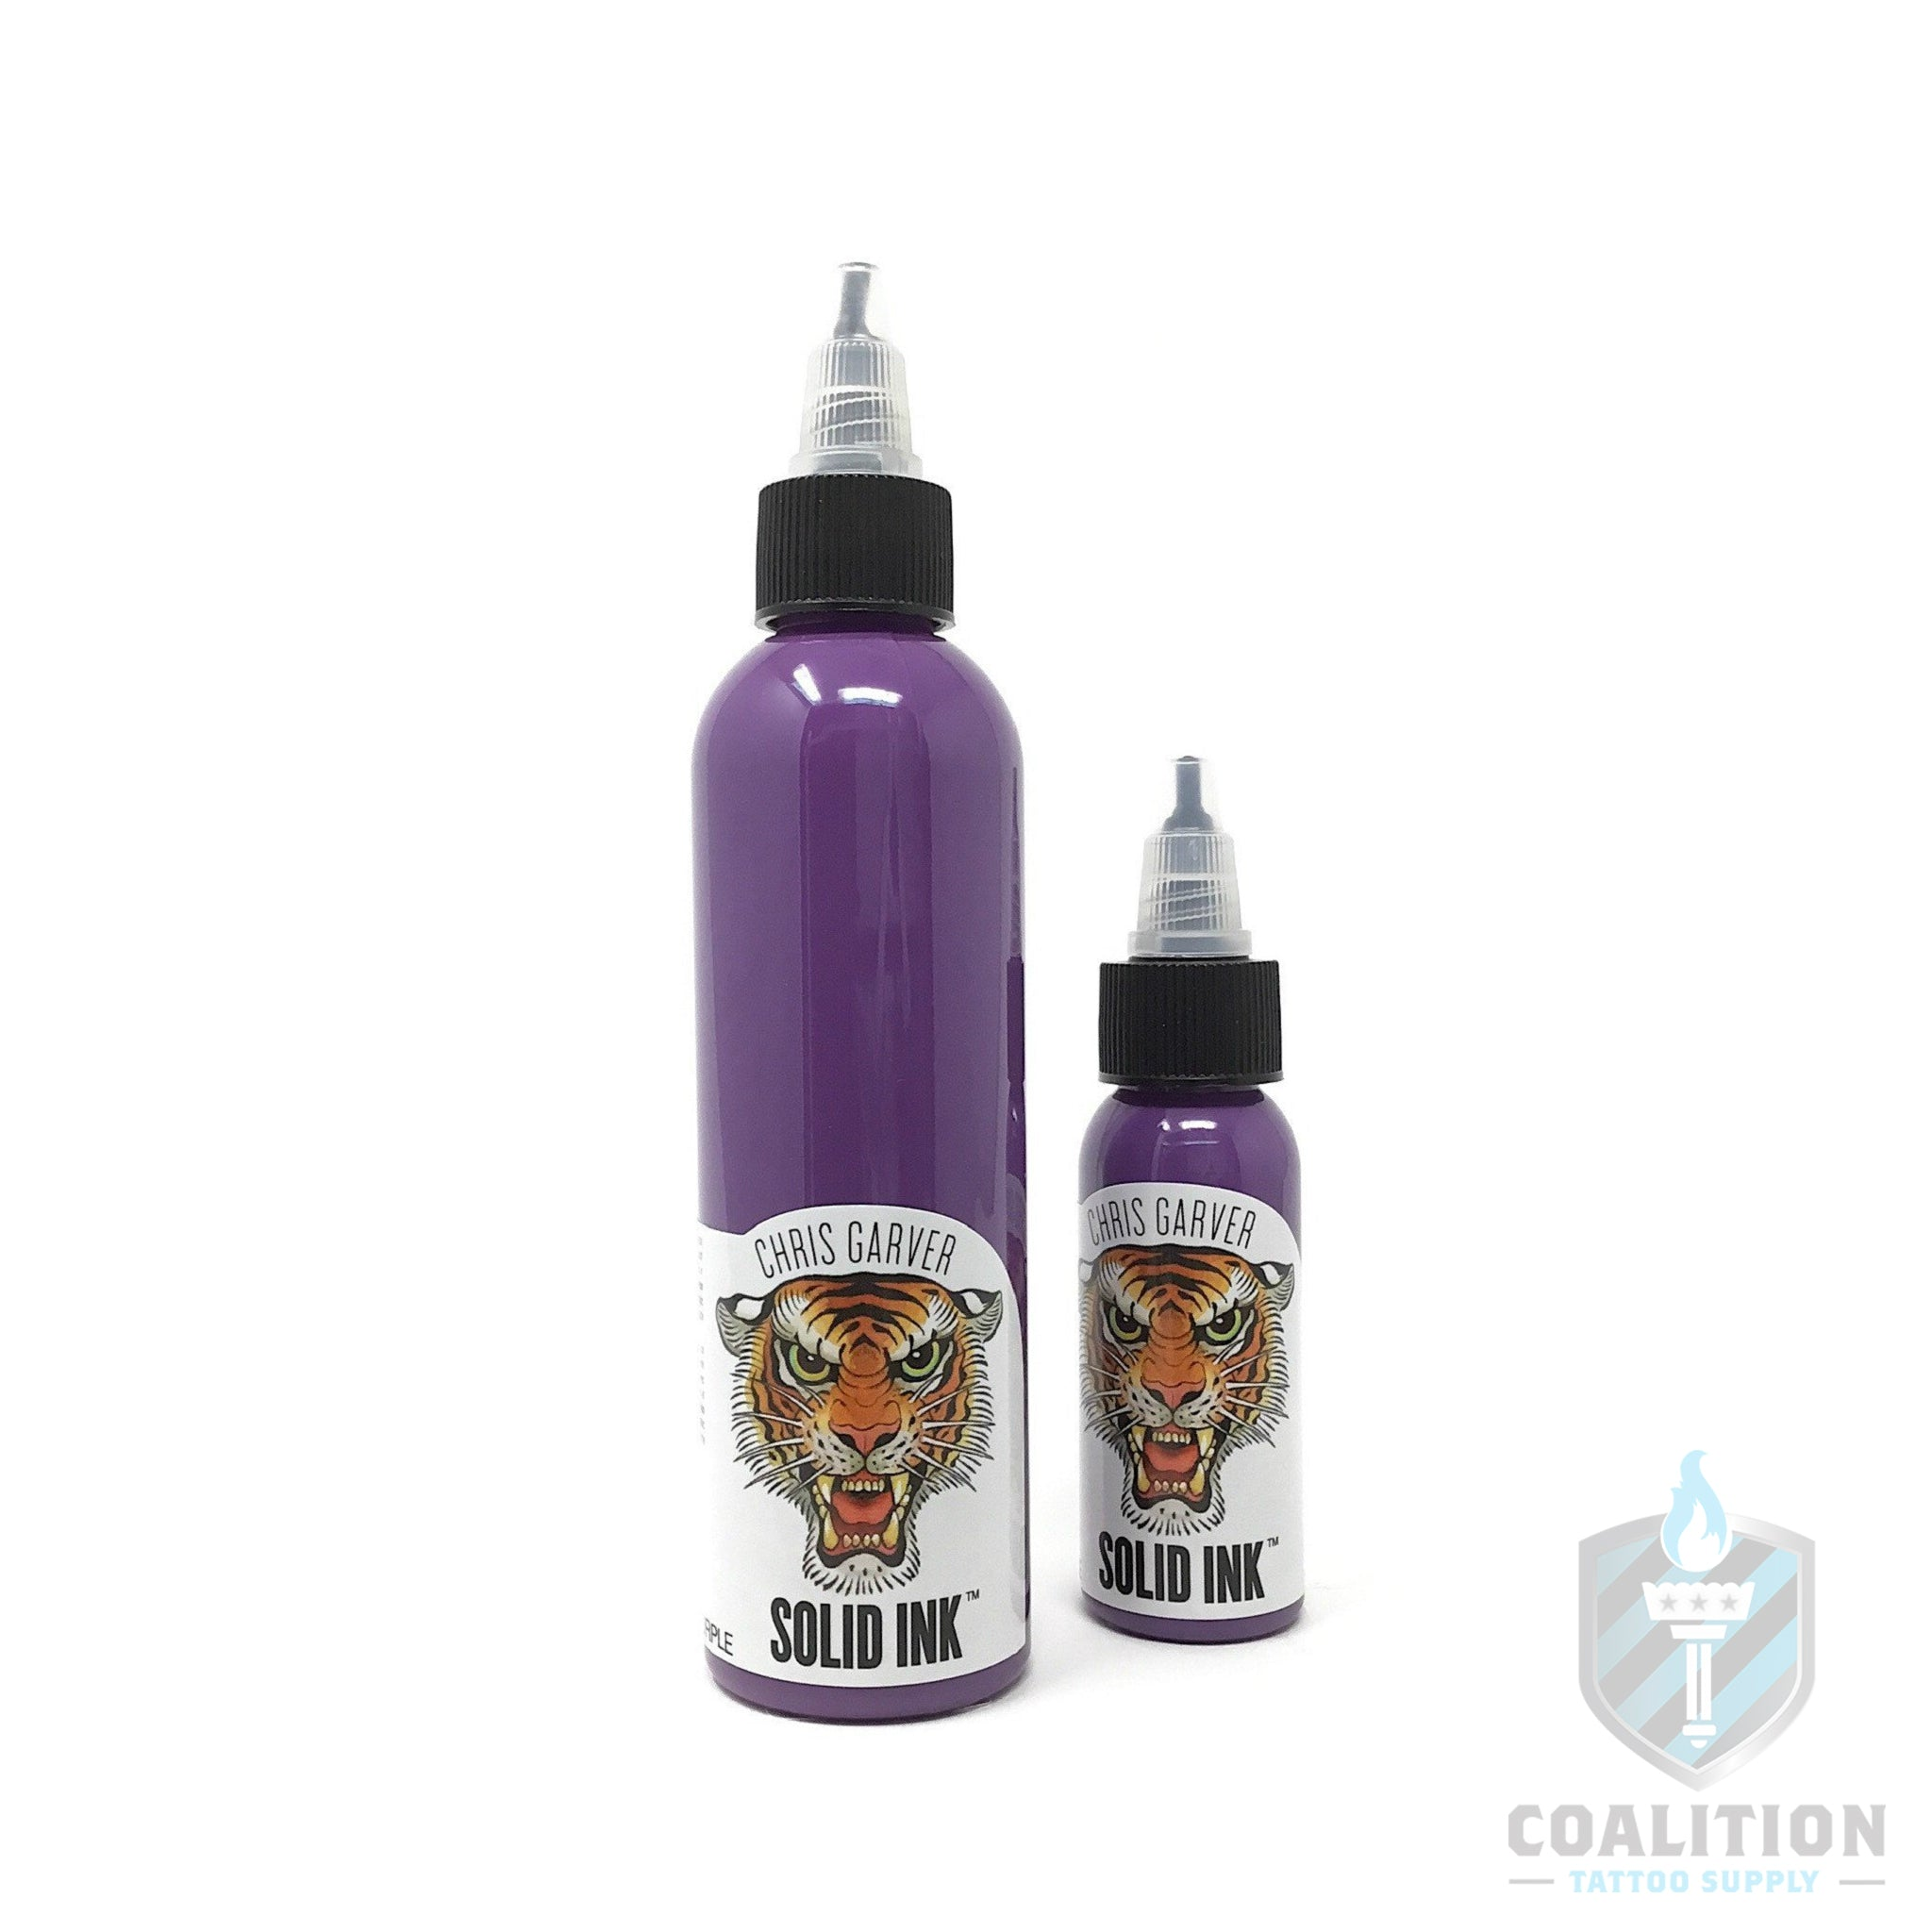 04a57e675 Solid CG Dirty Purple - Chris Garver – Coalition Tattoo Supply